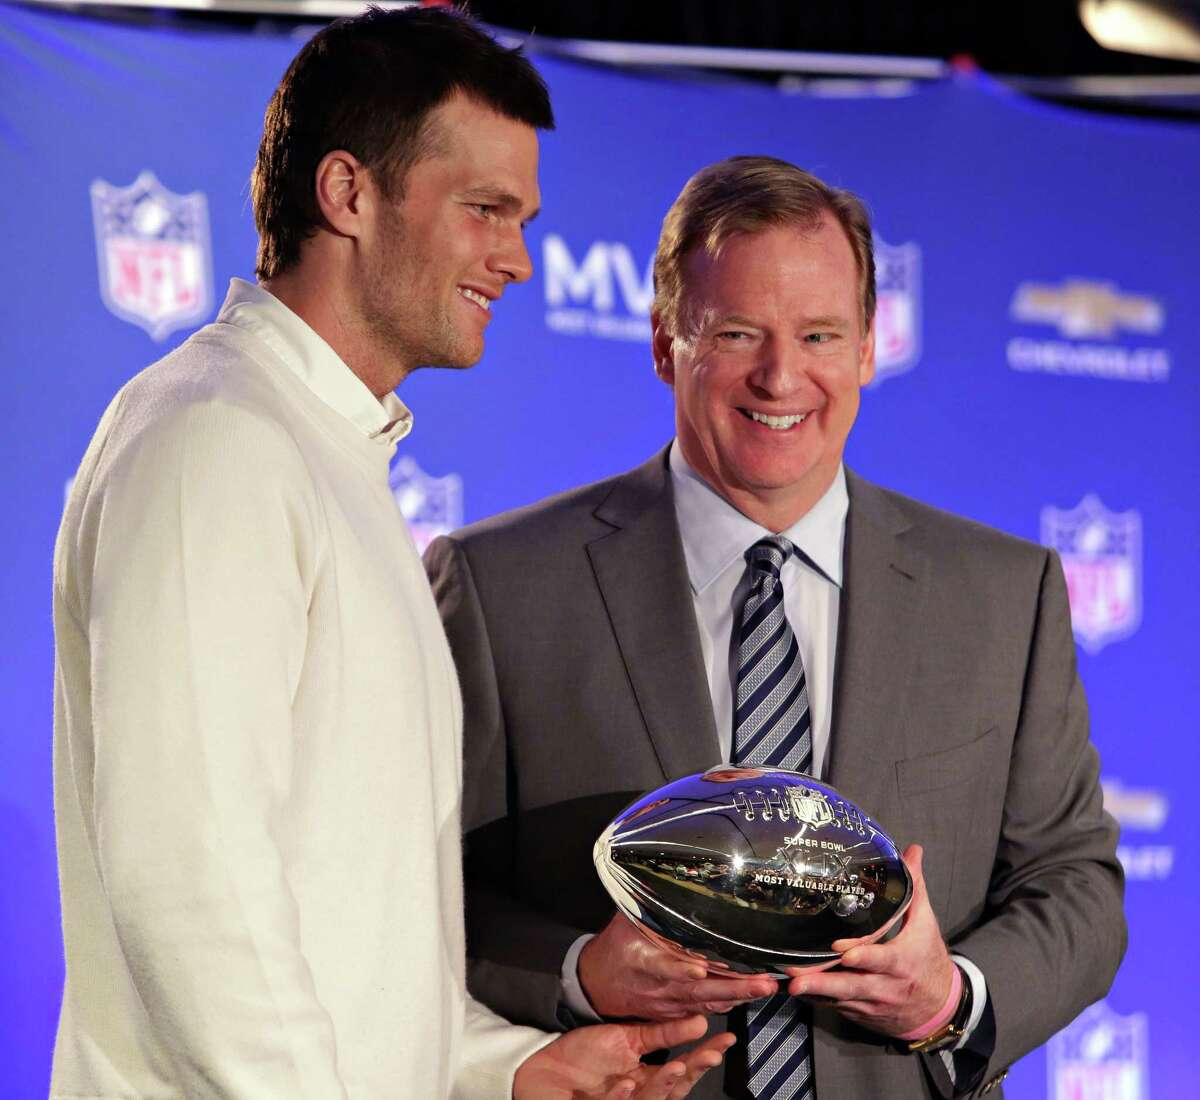 In this Feb. 2 file photo, New England Patriots quarterback Tom Brady, left, poses with NFL Commissioner Roger Goodell during a news conference where Brady was presented the Super Bowl MVP award in Phoenix, Ariz.